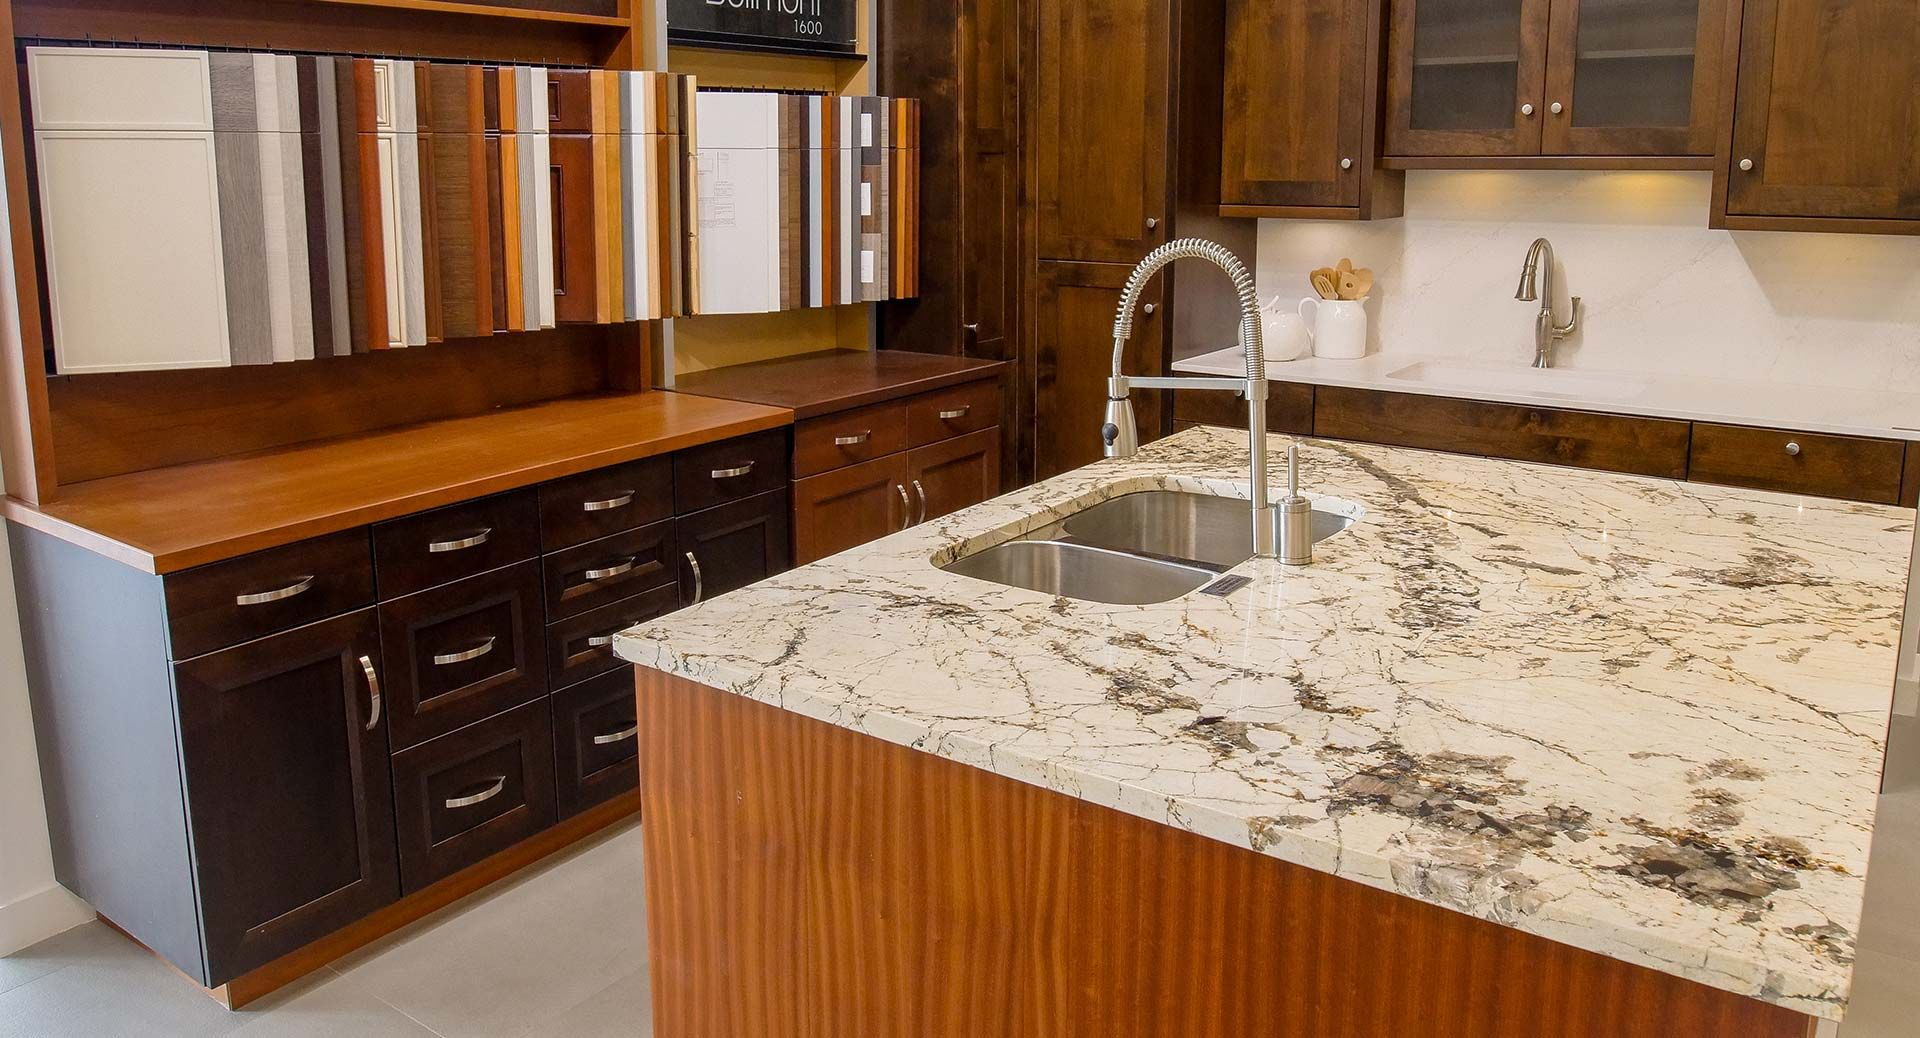 The Design Professionals At Trimline Design Center Can Help Select The Kitchen Cabinet Of Your In 2020 Kitchen Design Custom Kitchen Cabinets Kitchen Bathroom Remodel